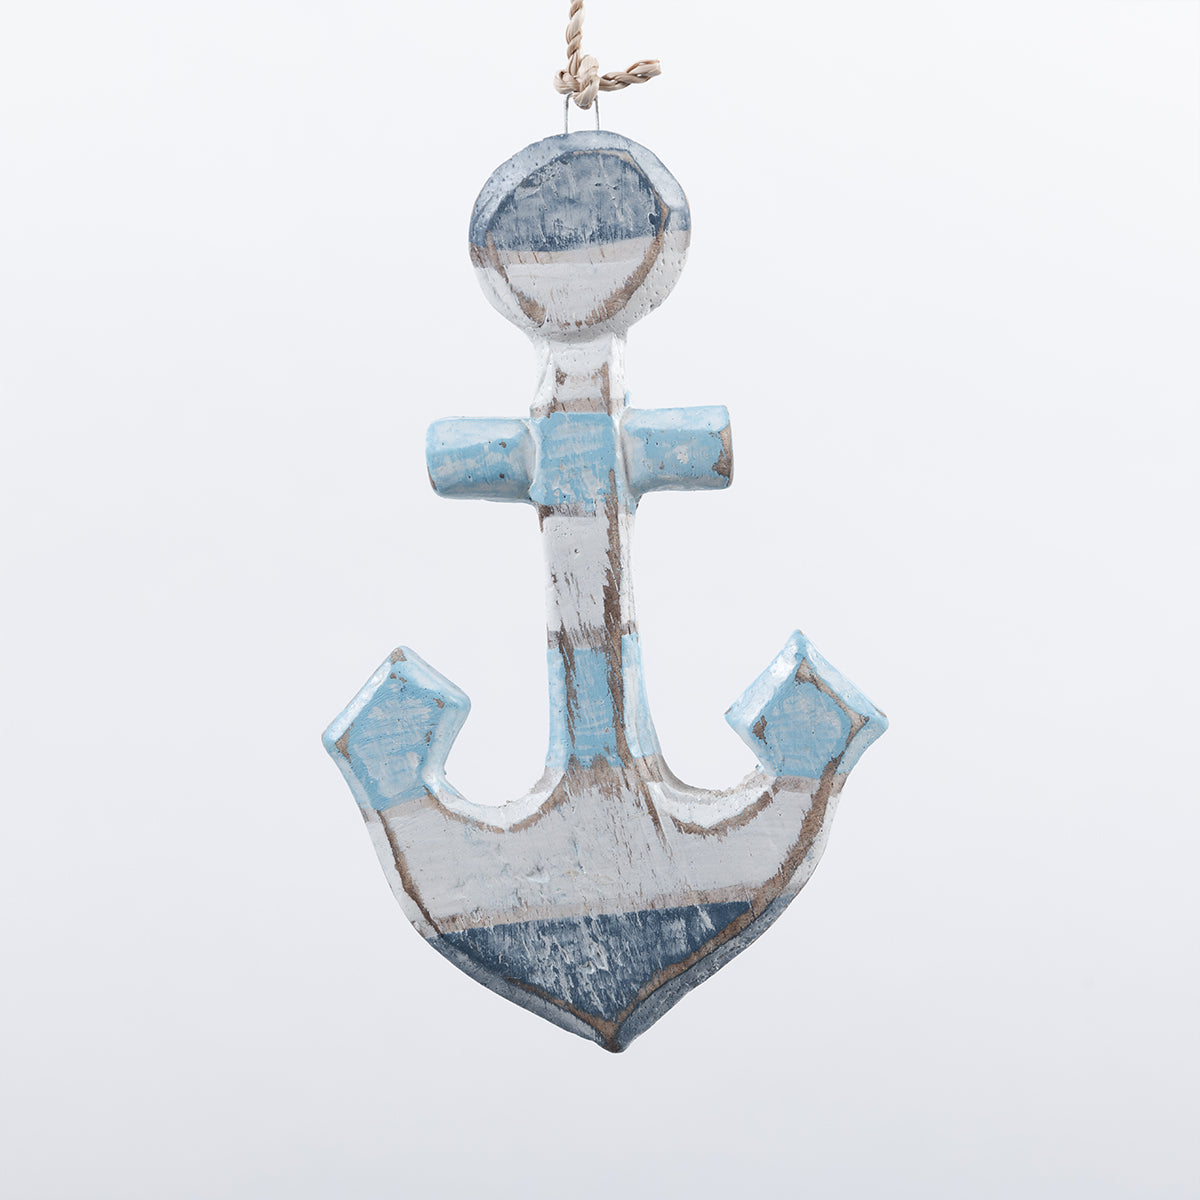 3 X BLUE/WHITE ANCHOR HANGERS